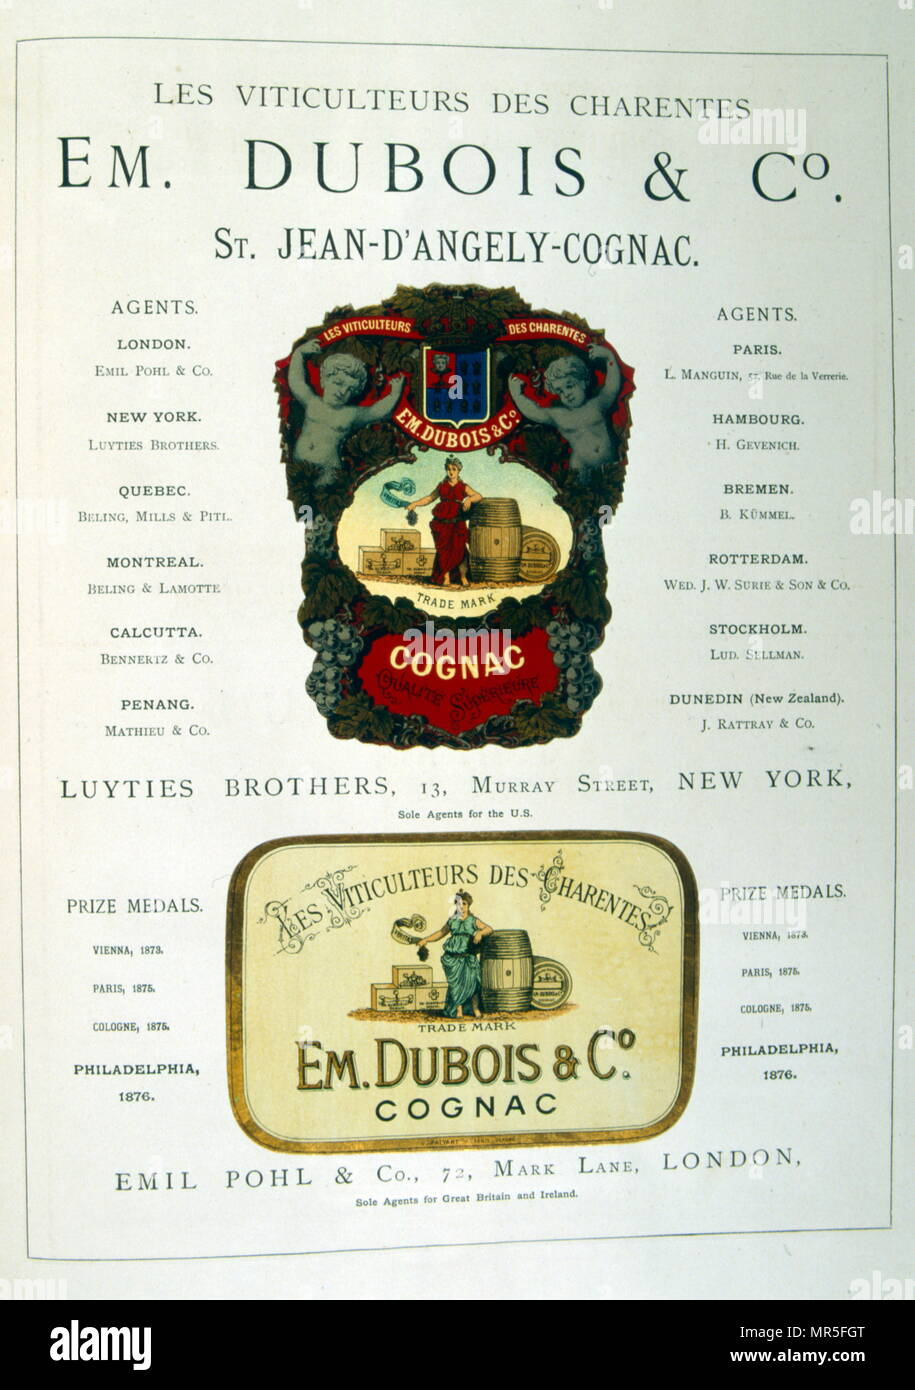 Advert for EM Dubois & Co, St Jean-D'Angely Cognac.  Brandy, showing their international agents for distribution 1877 - Stock Image